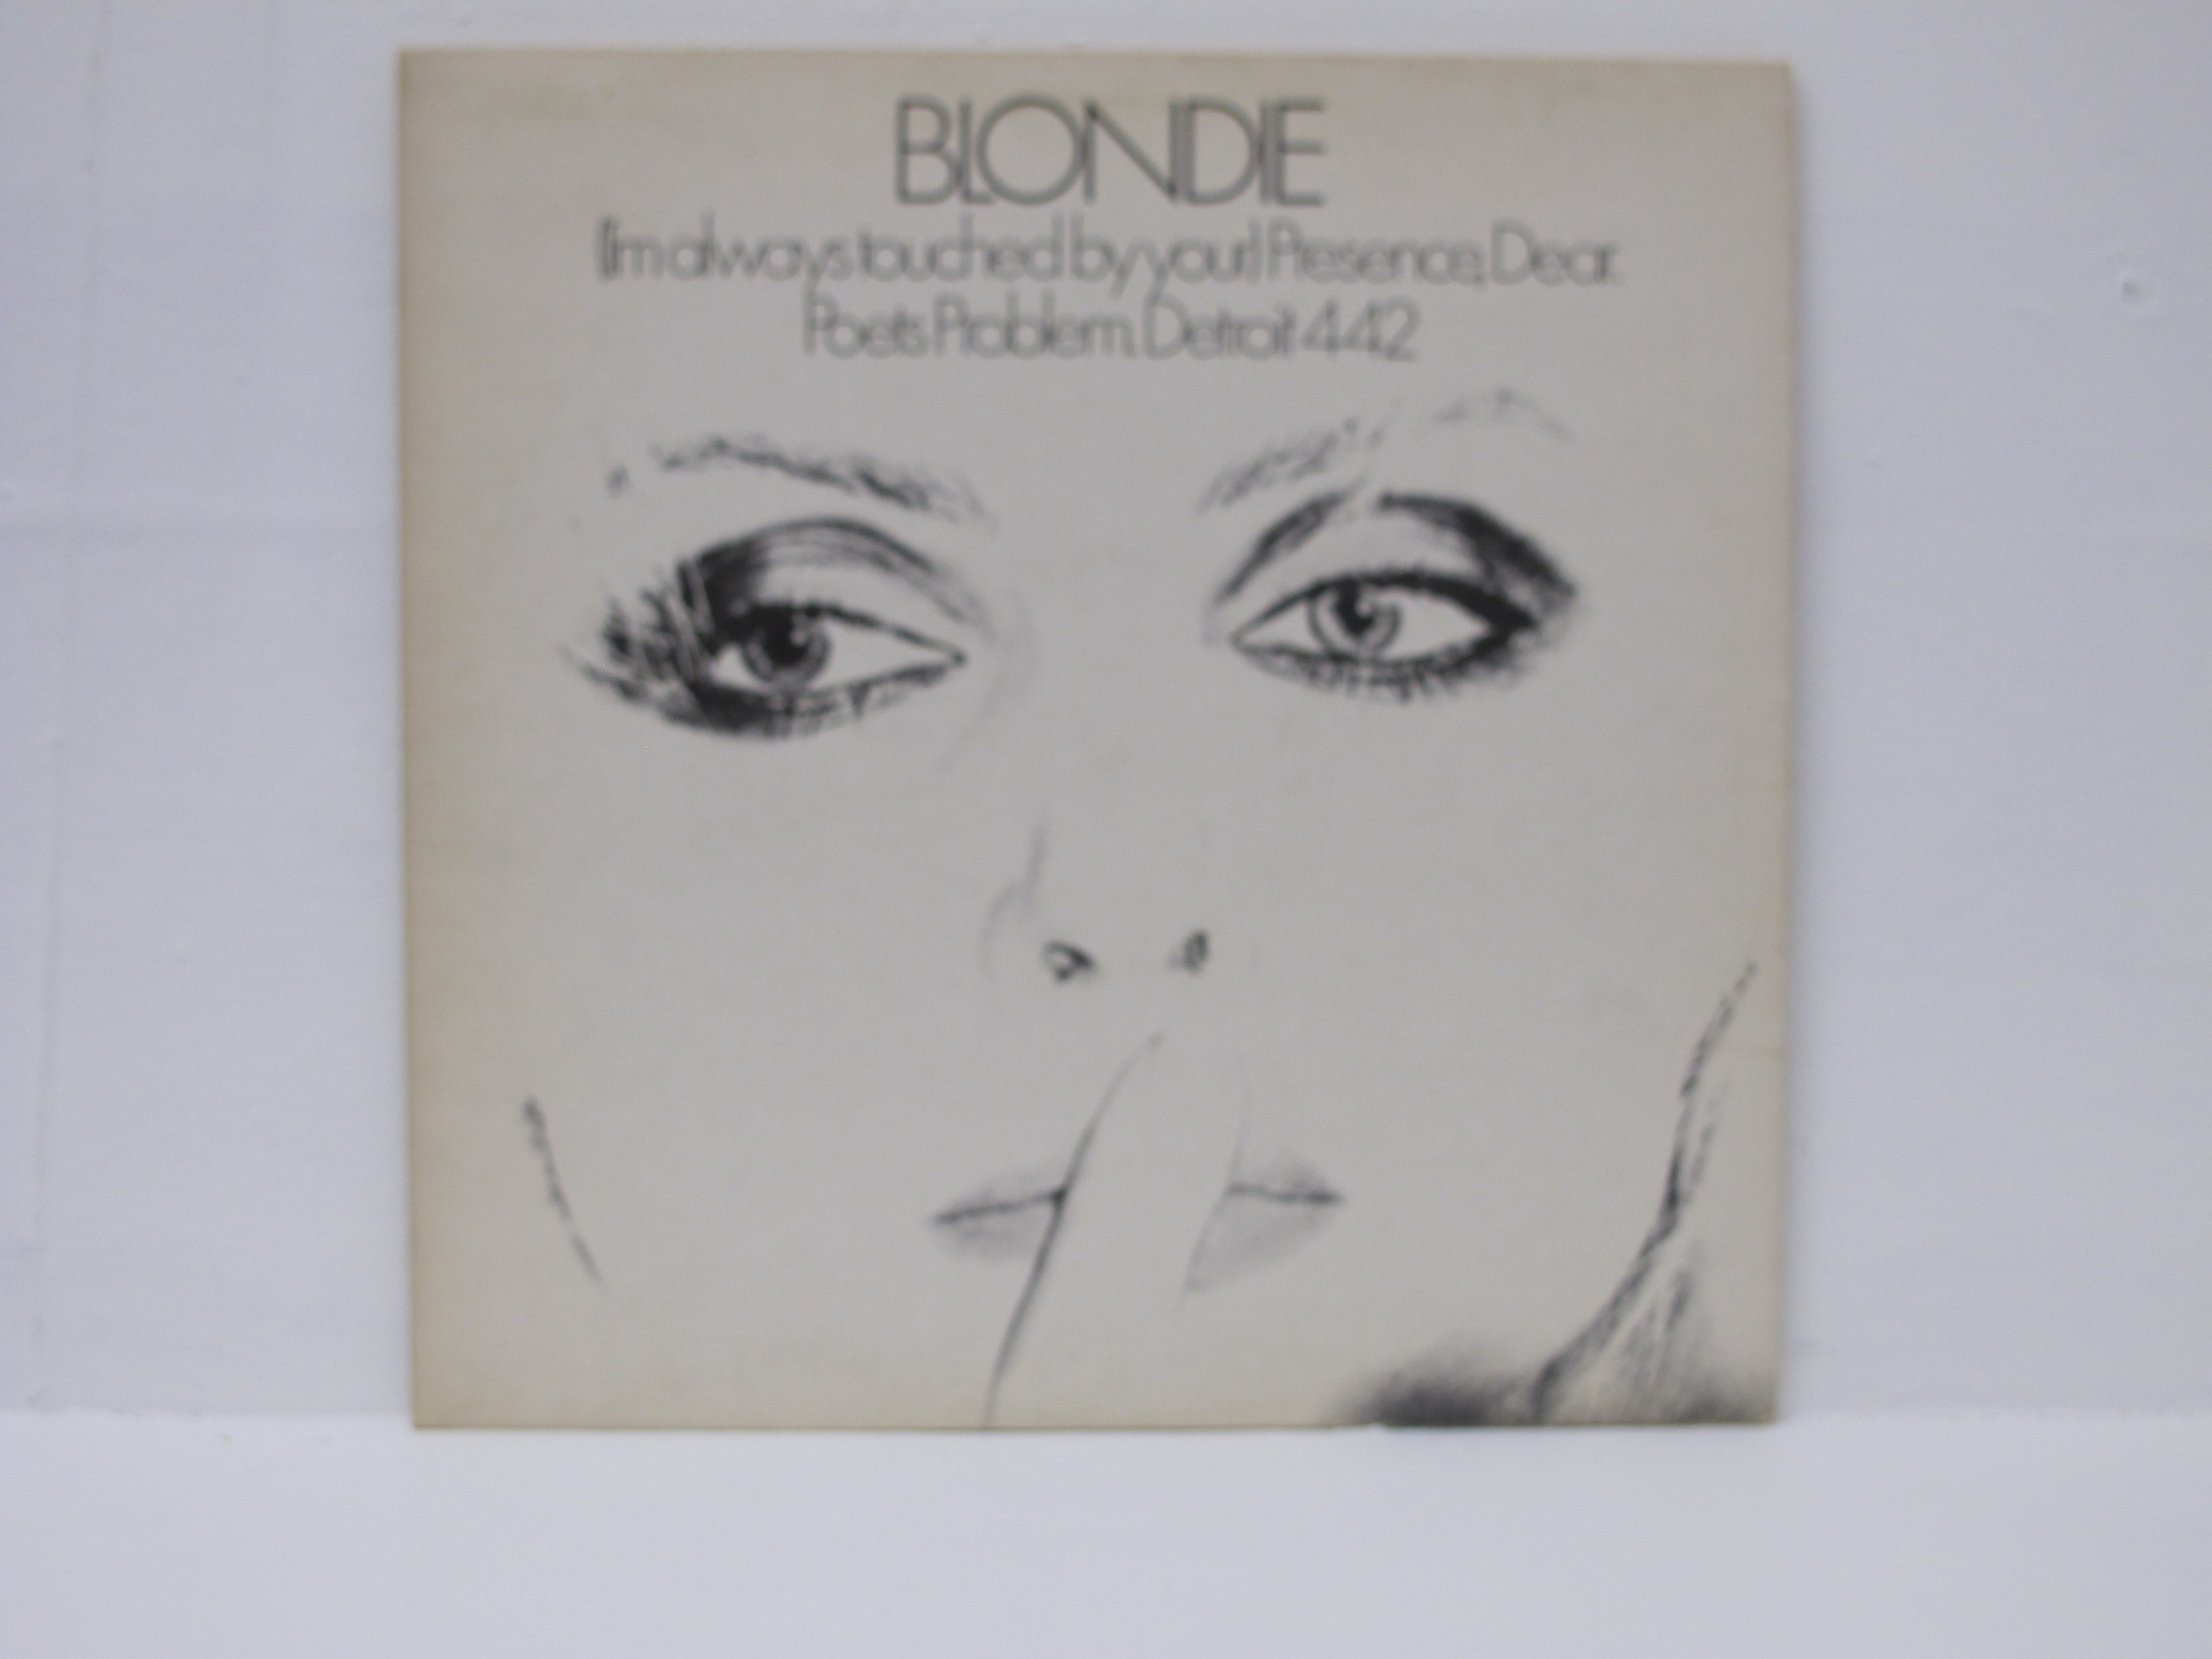 Blondie - (I'm Always Touched By Your) Presence, Dear.